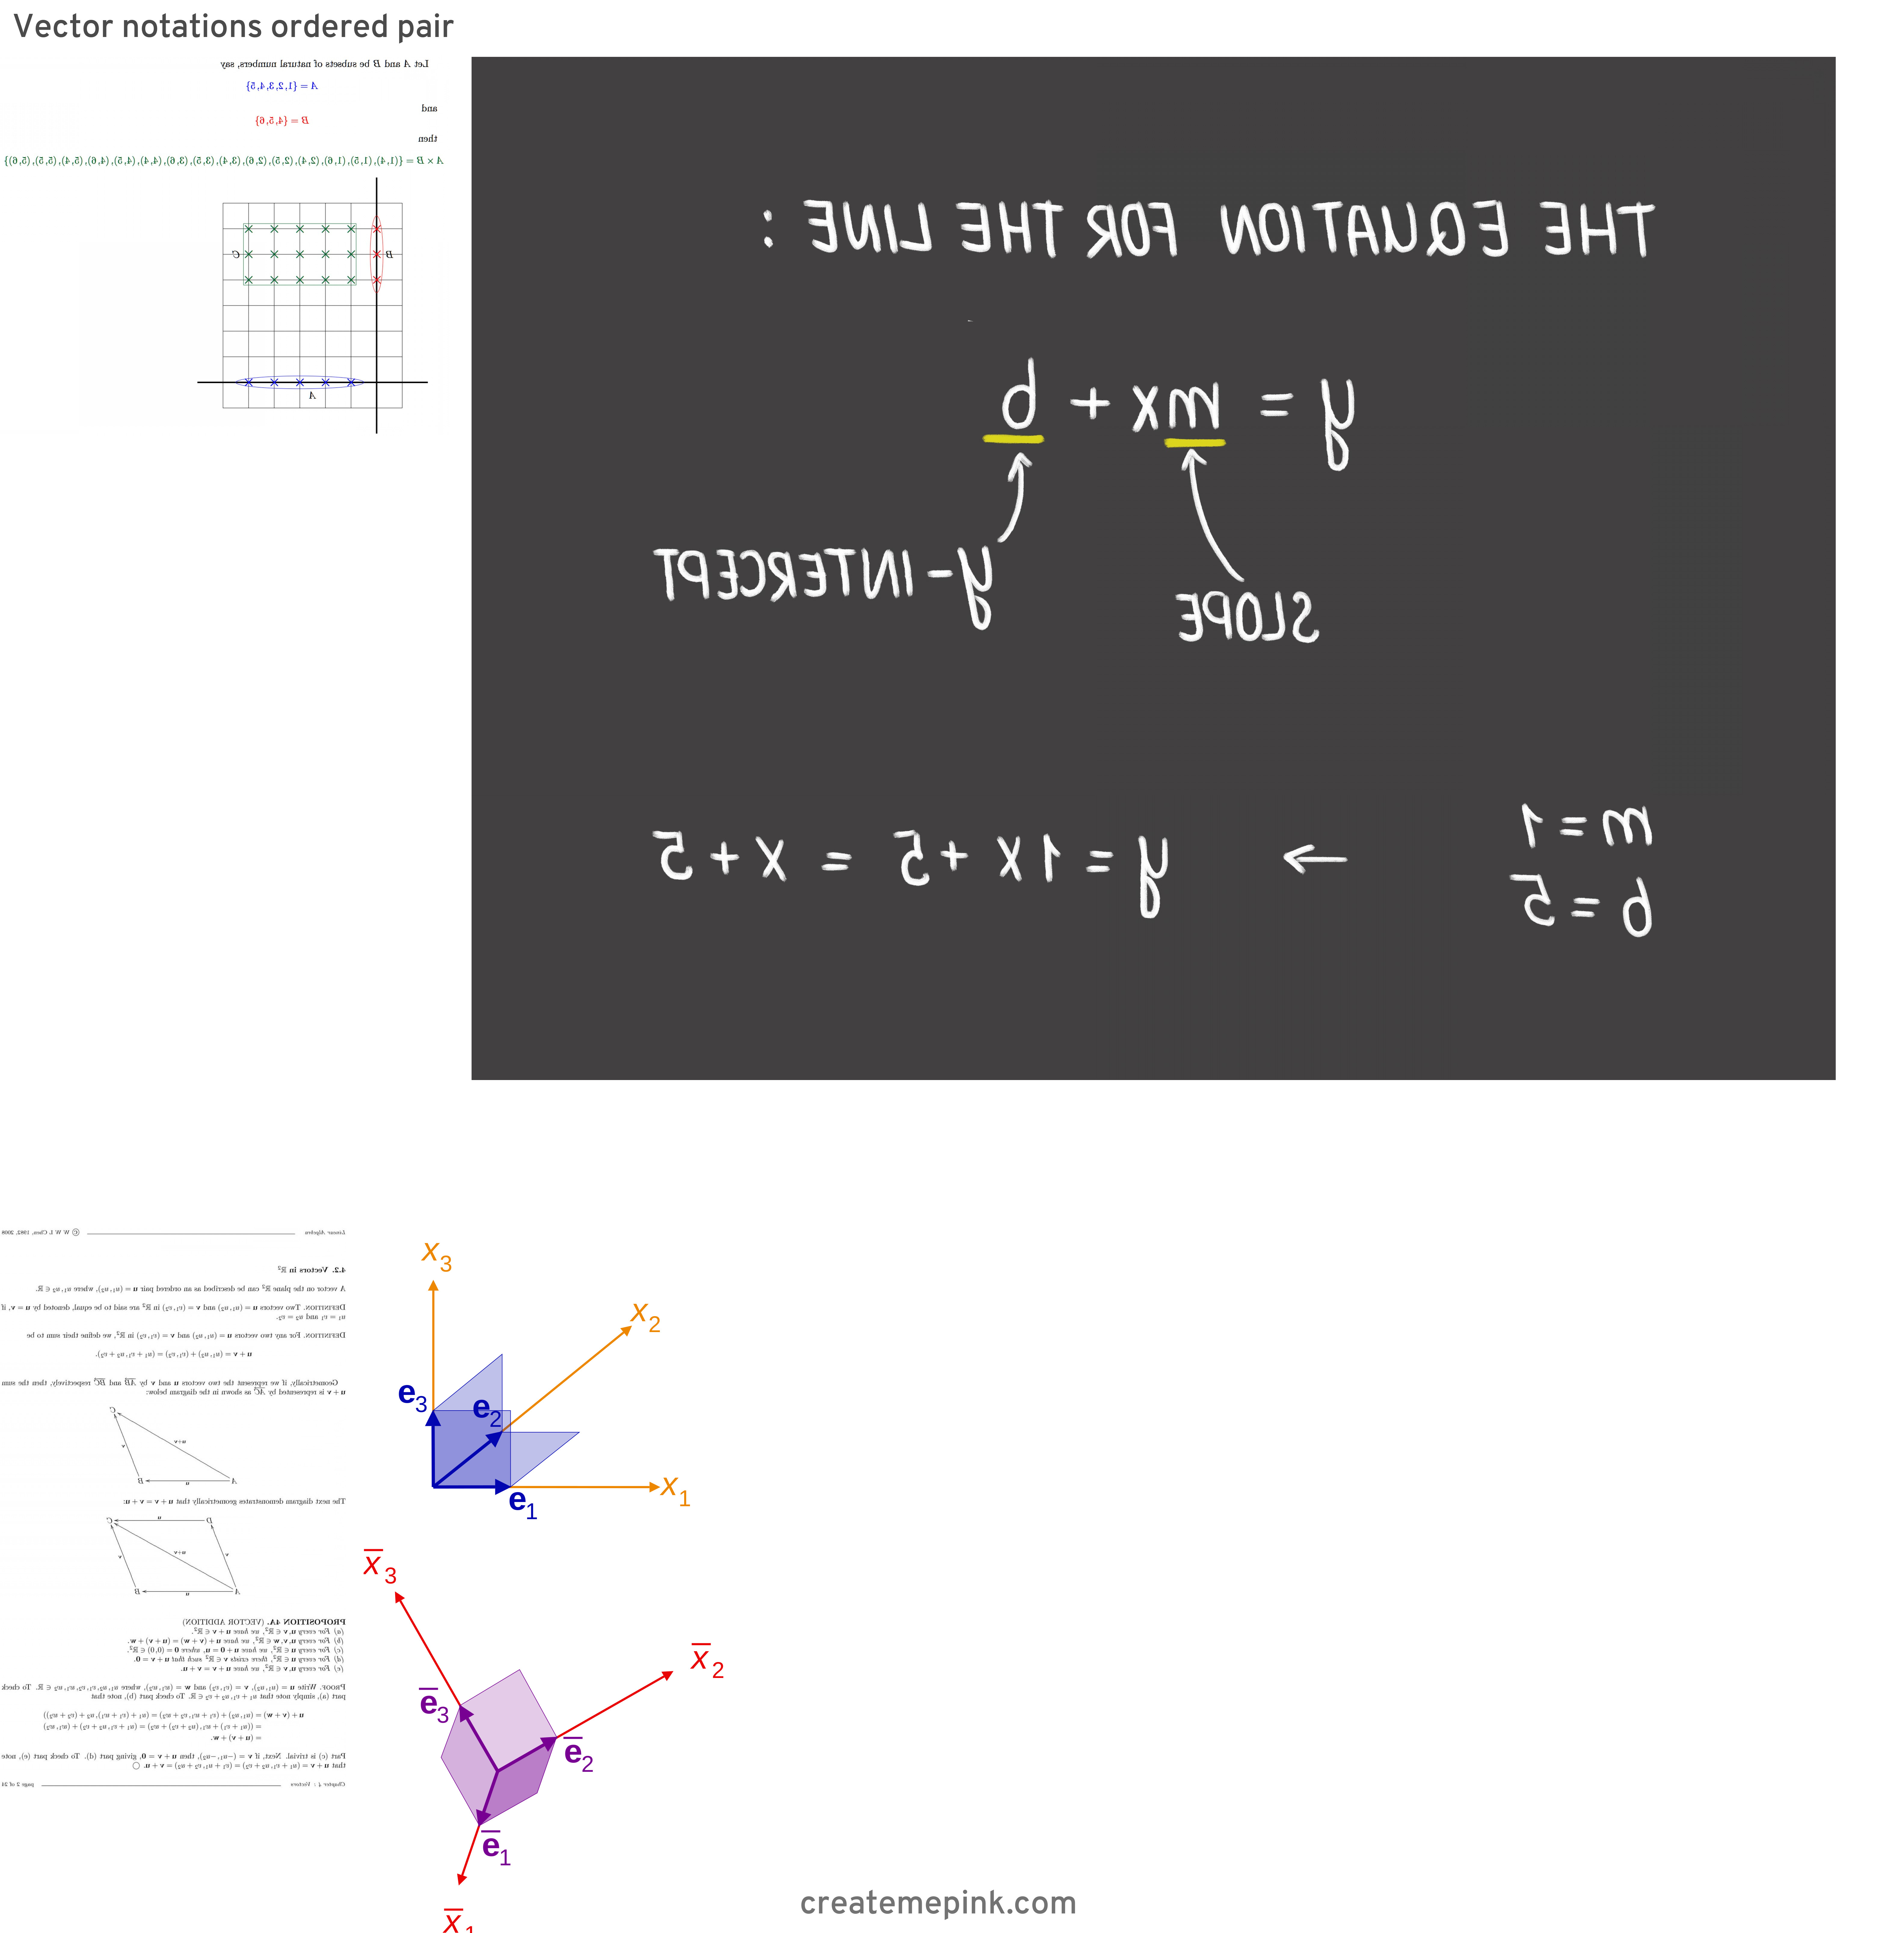 Ordered Pair Notation For Vectors: Vector Notations Ordered Pair